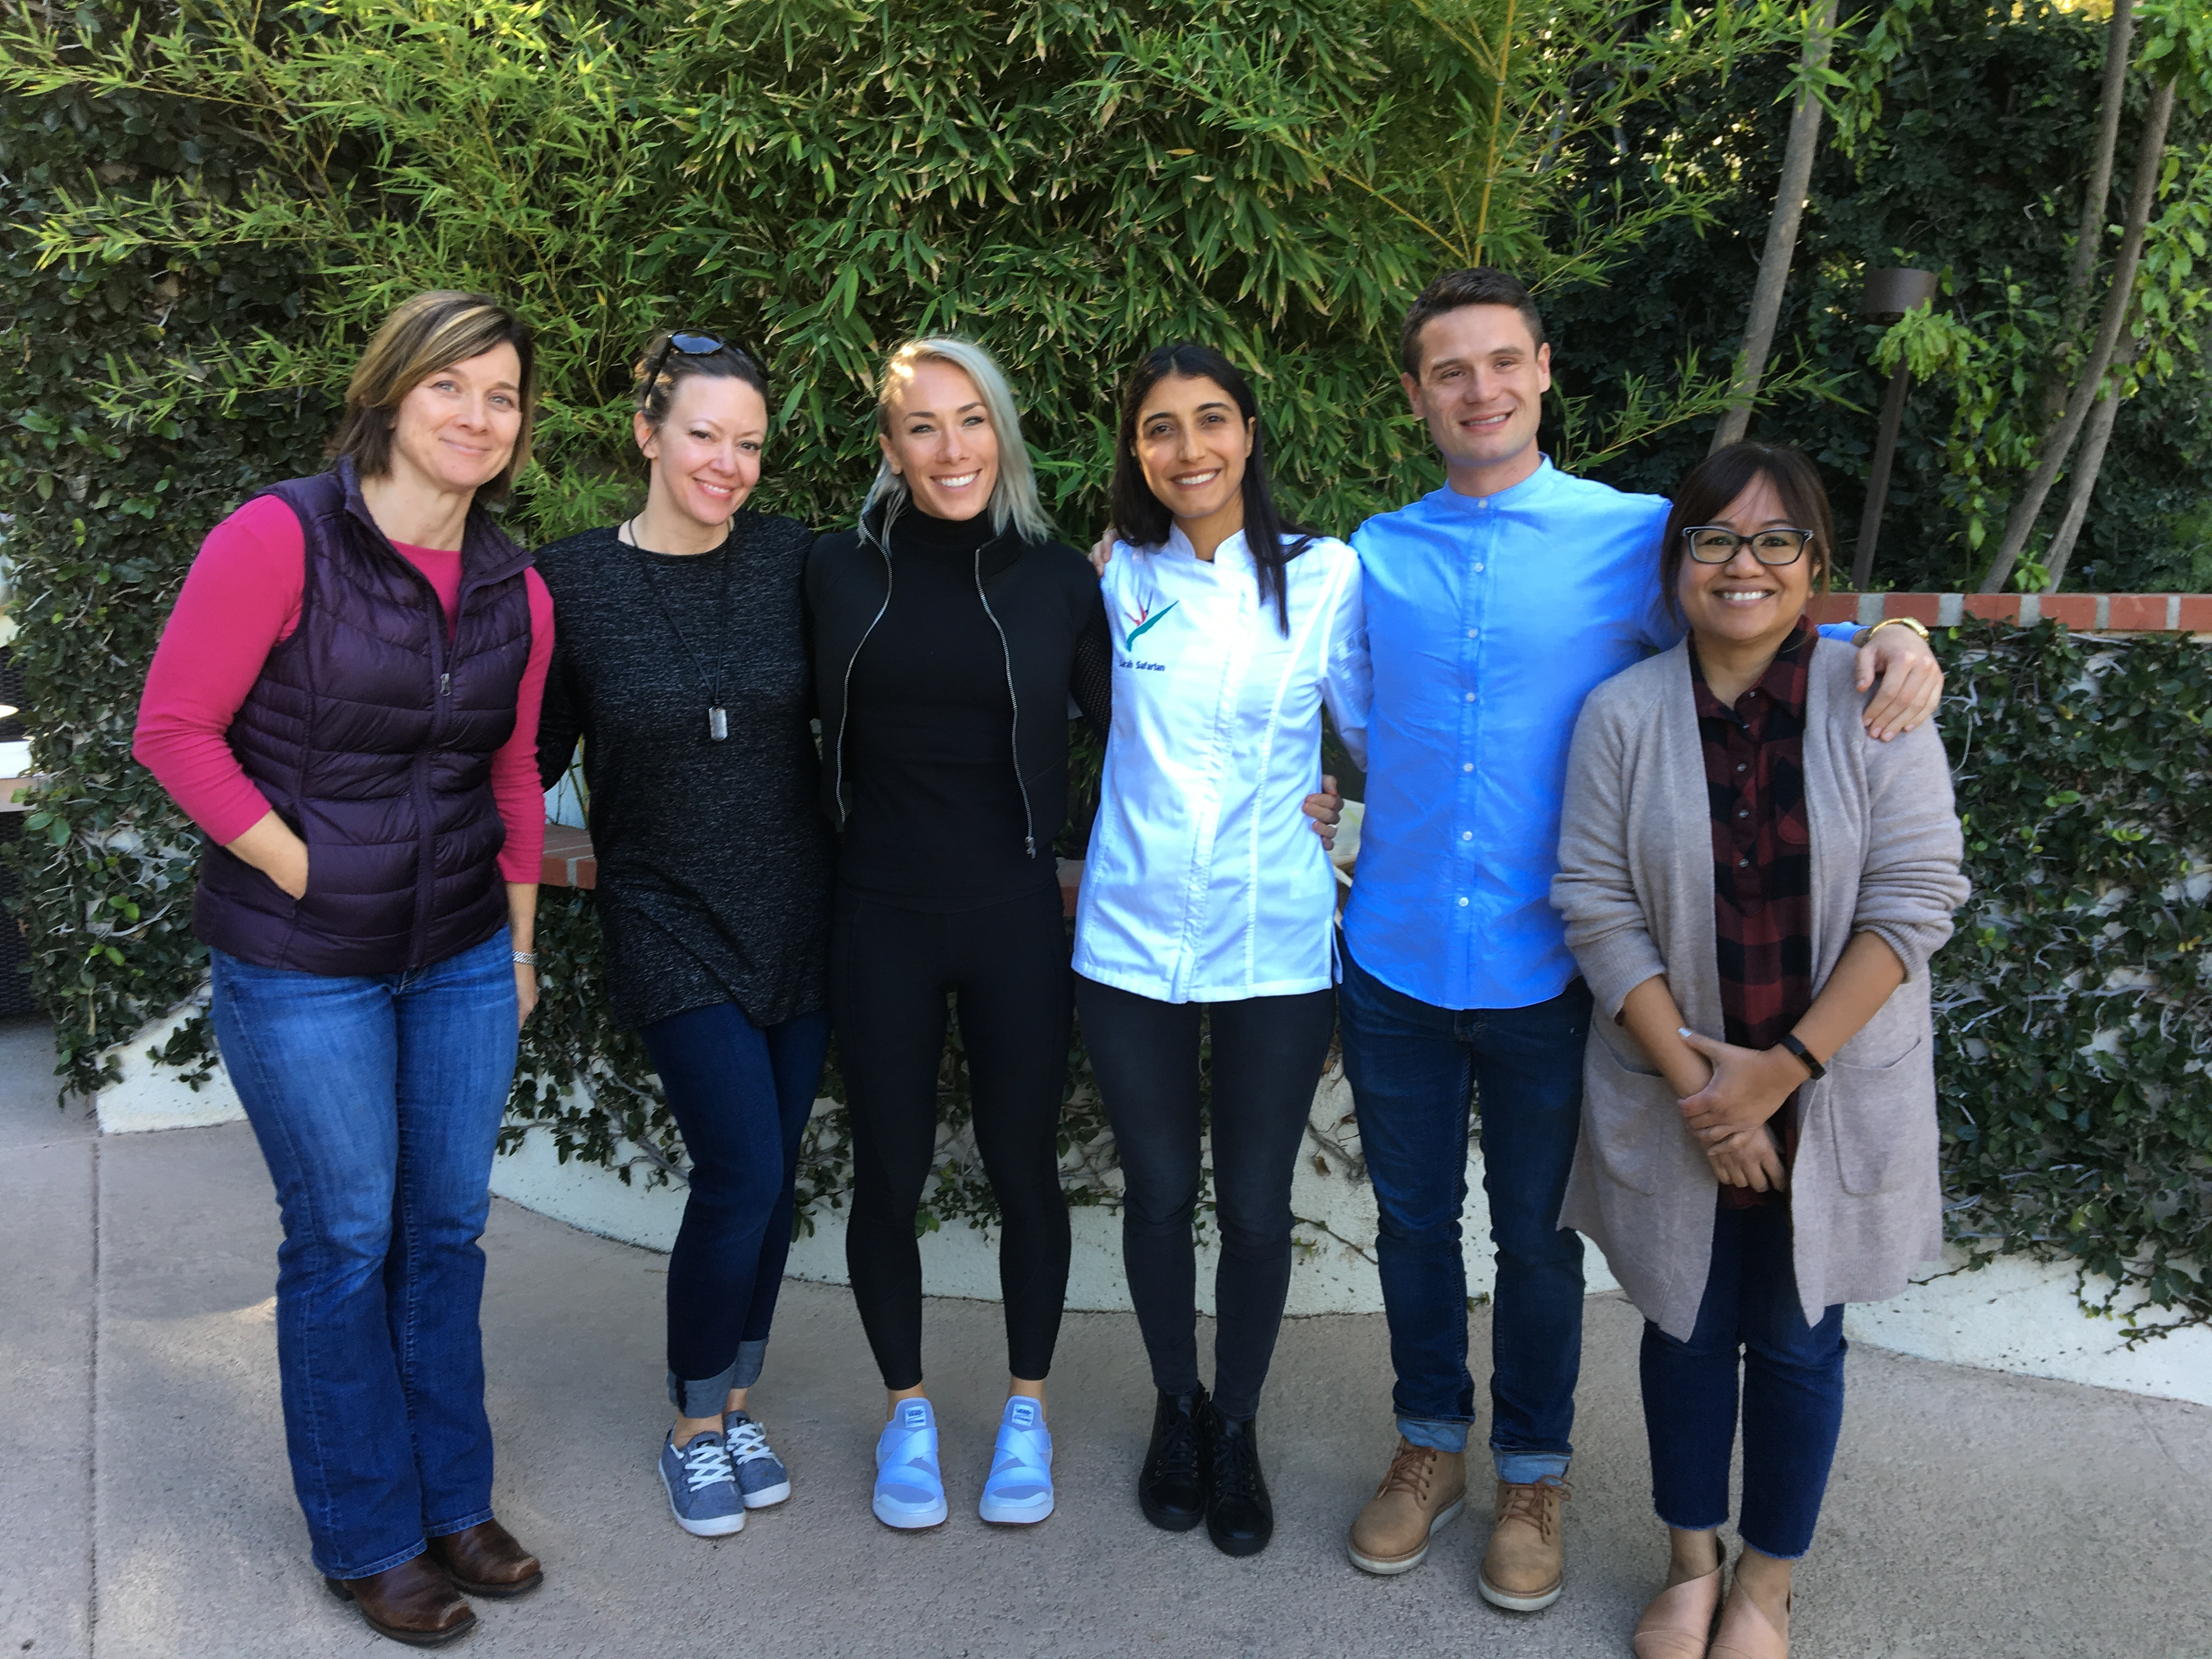 Plant-based Cooking classes Glen Ivy Hot Springs Corona Los Angeles California Influencers